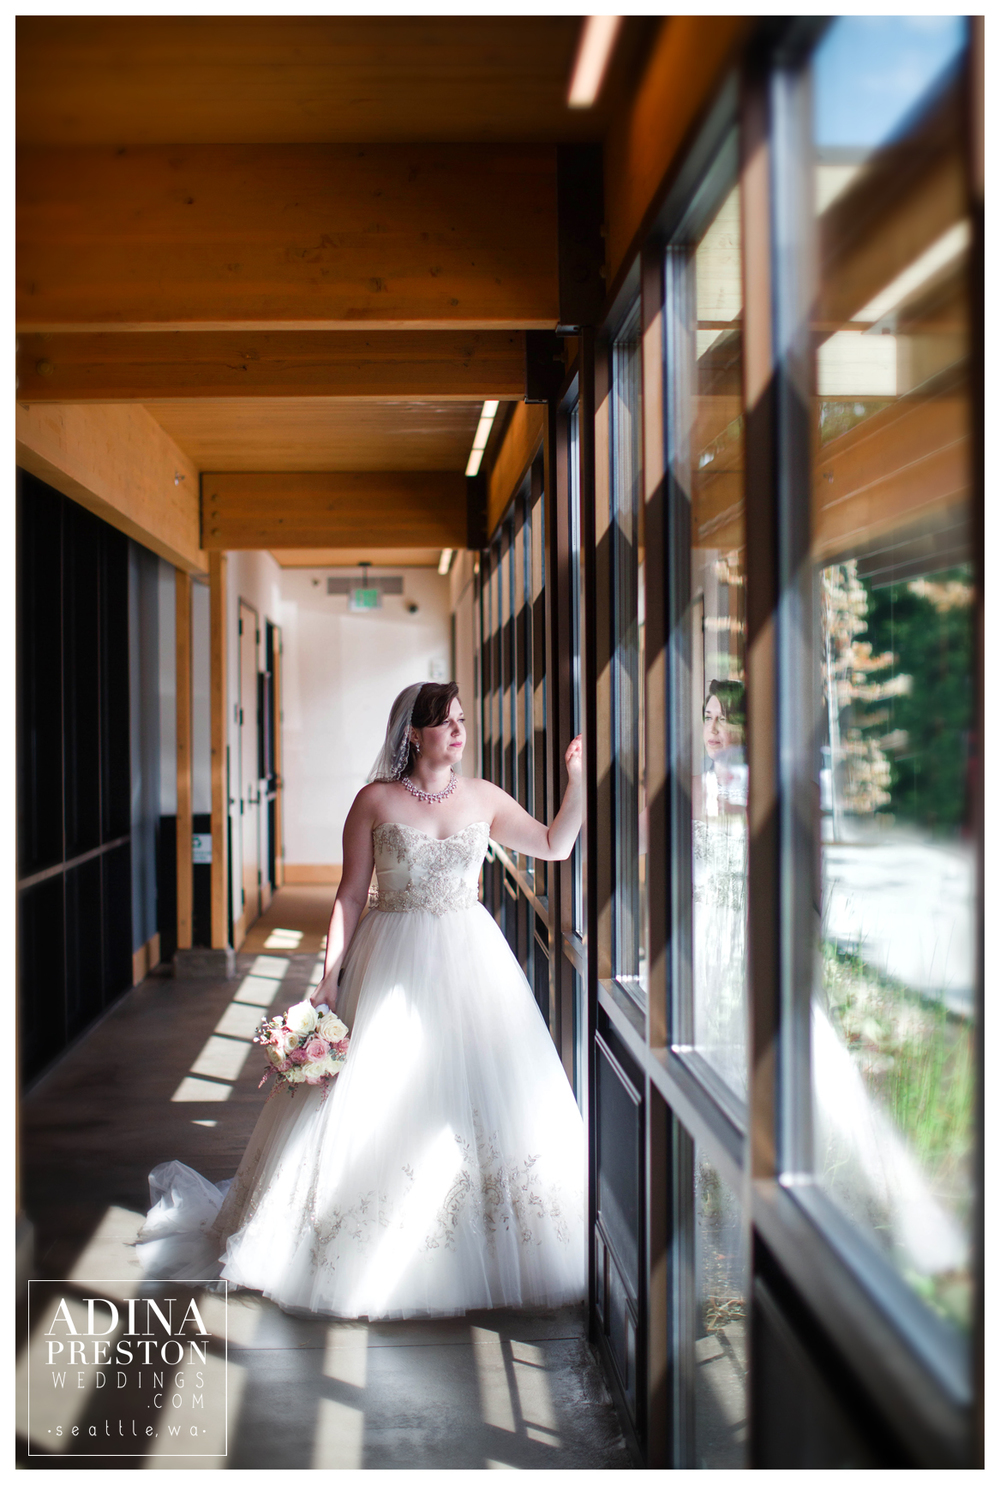 Heather+Sean_Adina+Preston+Weddings_Seattle+Weddings_Seattle+Wedding+Photographer.JPG